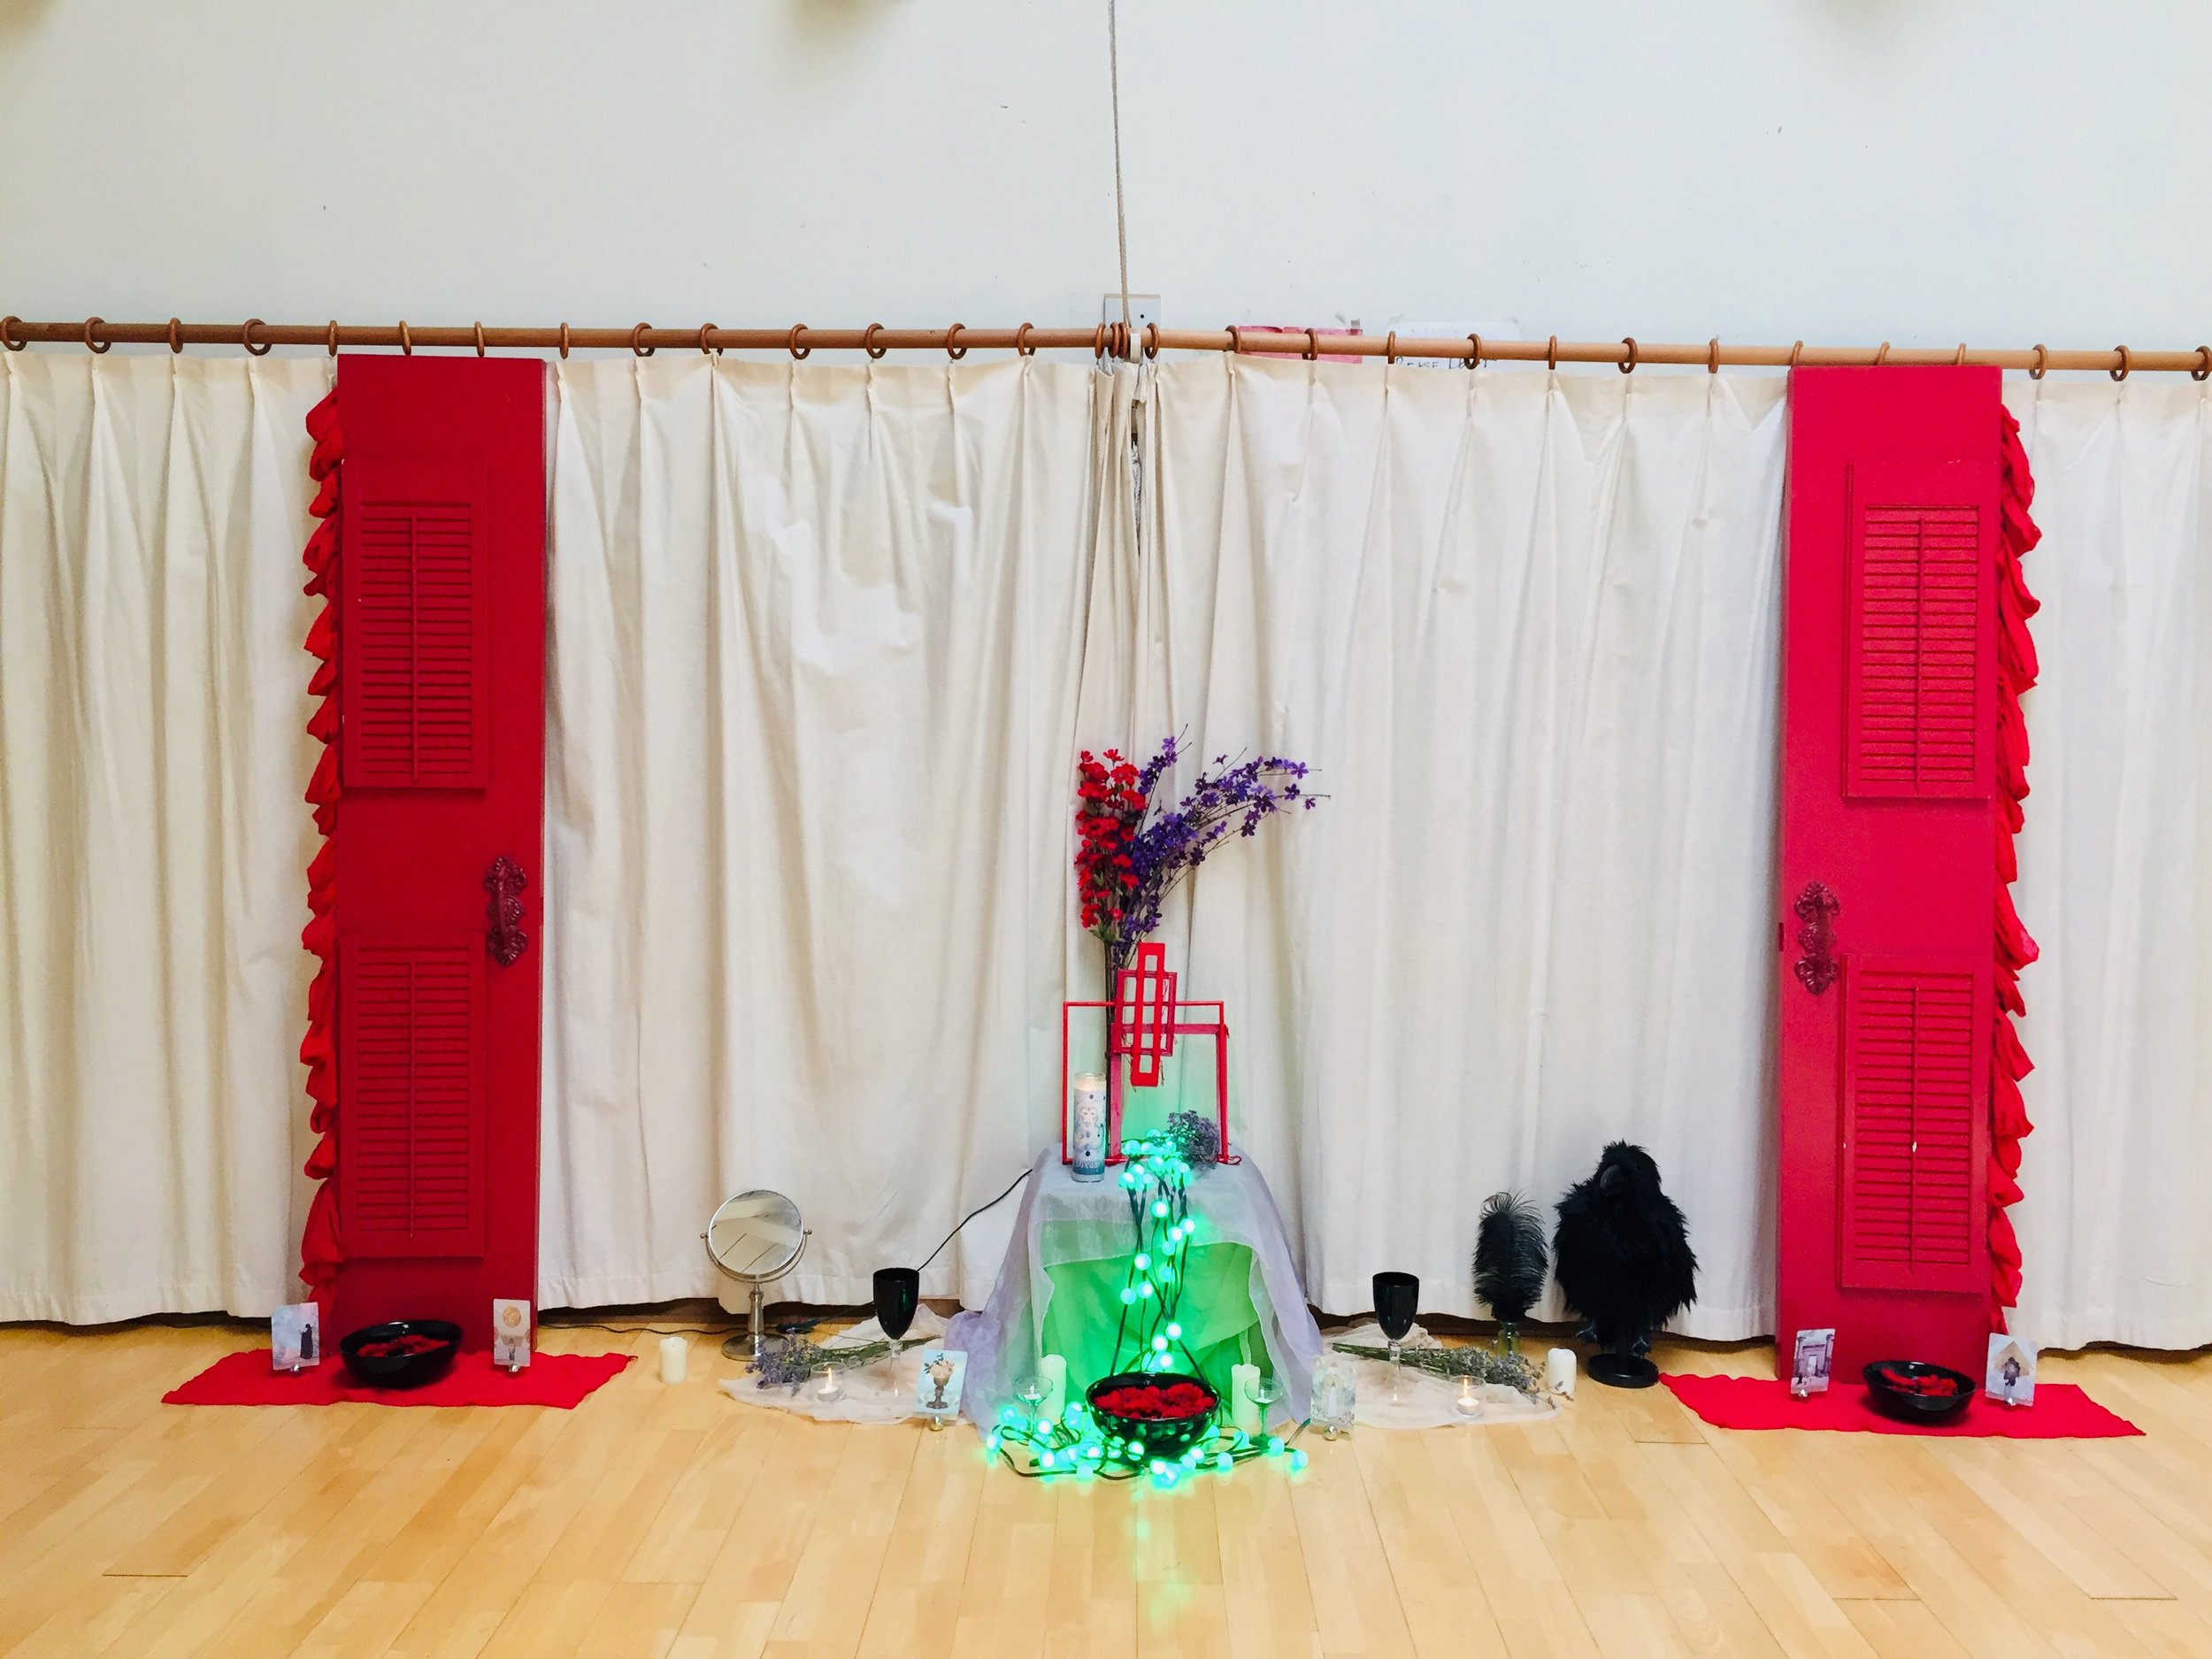 Red Door Altar Installation - Day 3 - Go : : Water